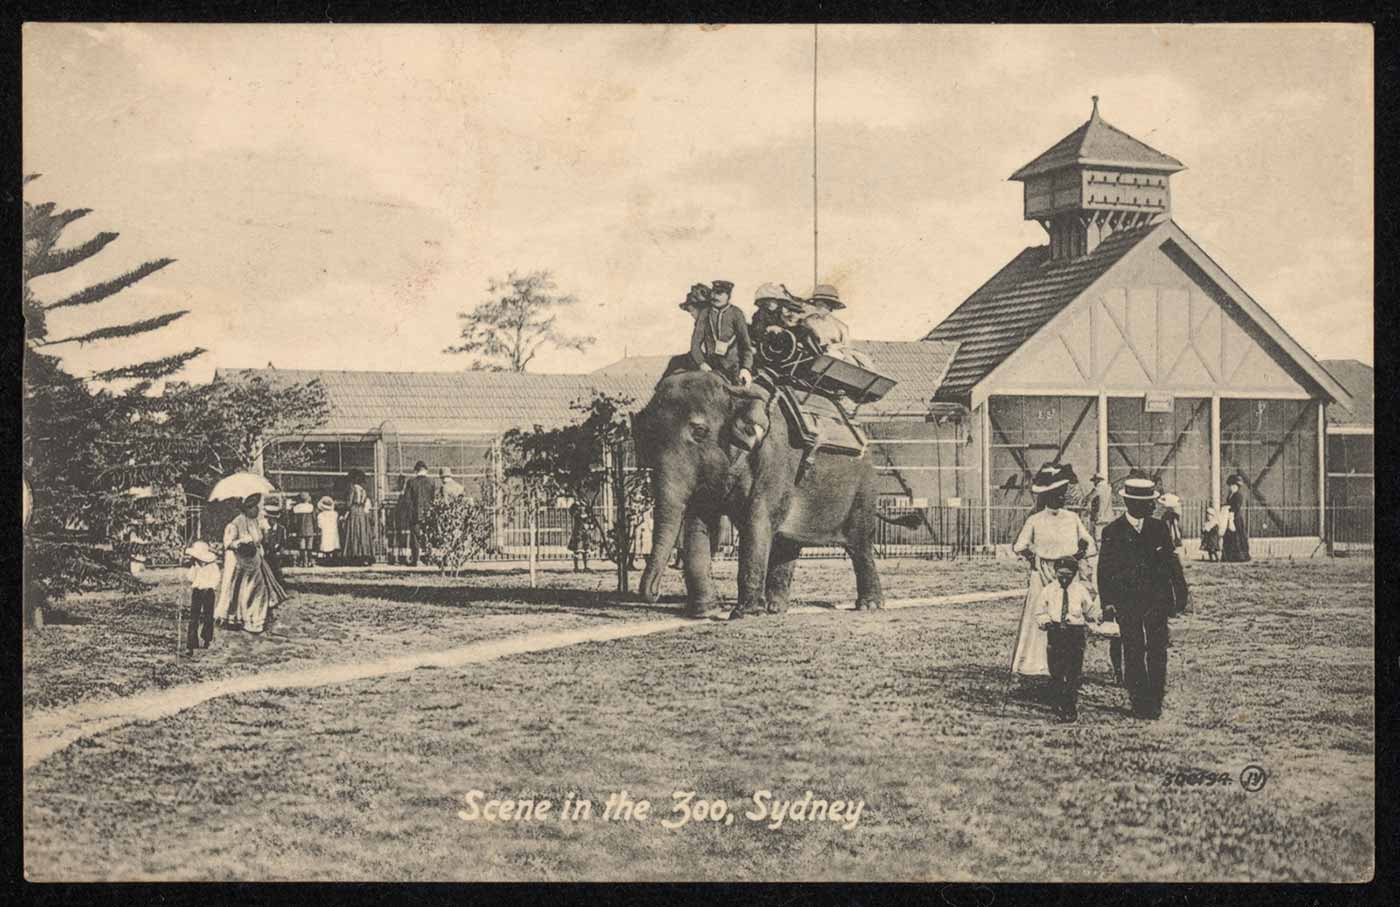 A black and white photograph titled 'Scene in the Zoo, Sydney'. An elephant carrying several people on its back is at centre, with people looking at bird aviaries in the rear. Several other people stroll across a lawn.